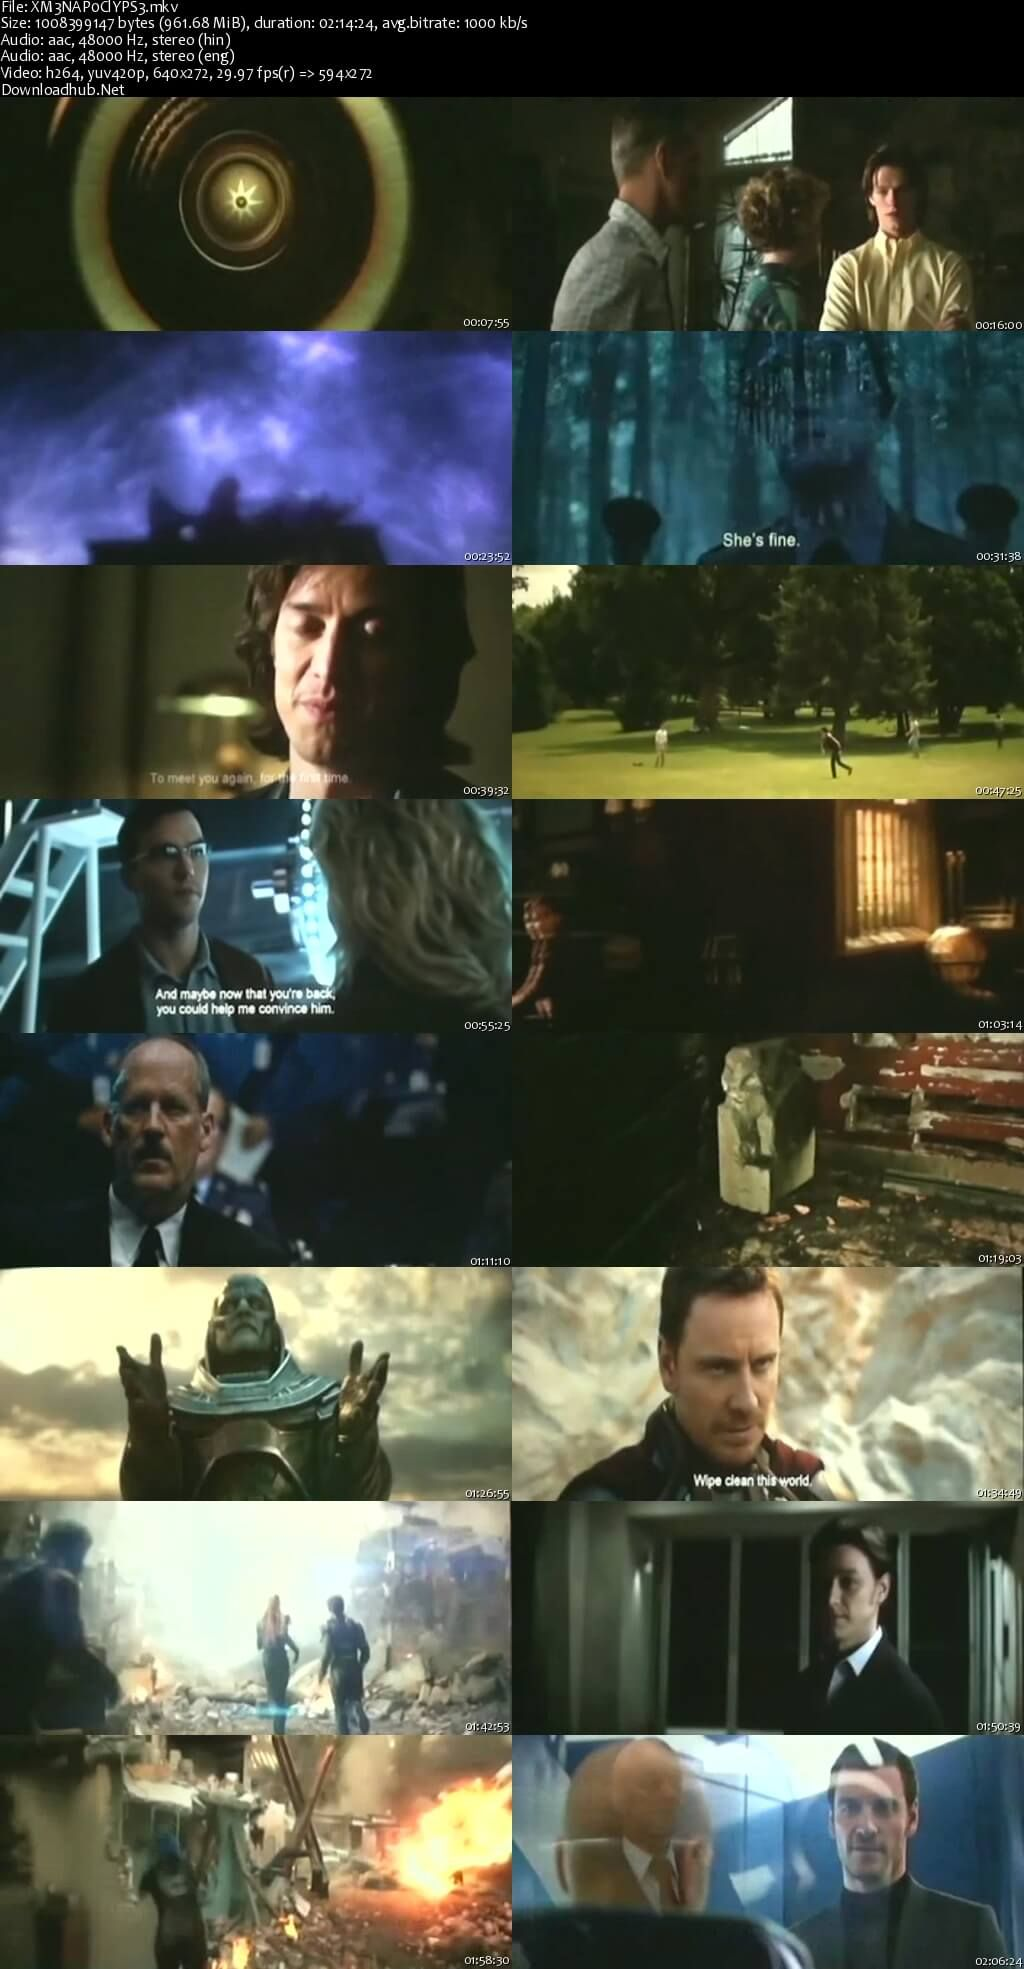 screenshot of x men apocalypse 2016 dual audio 950mb hdcam hindi screenshot of x men apocalypse 2016 dual audio 950mb hdcam hindi english